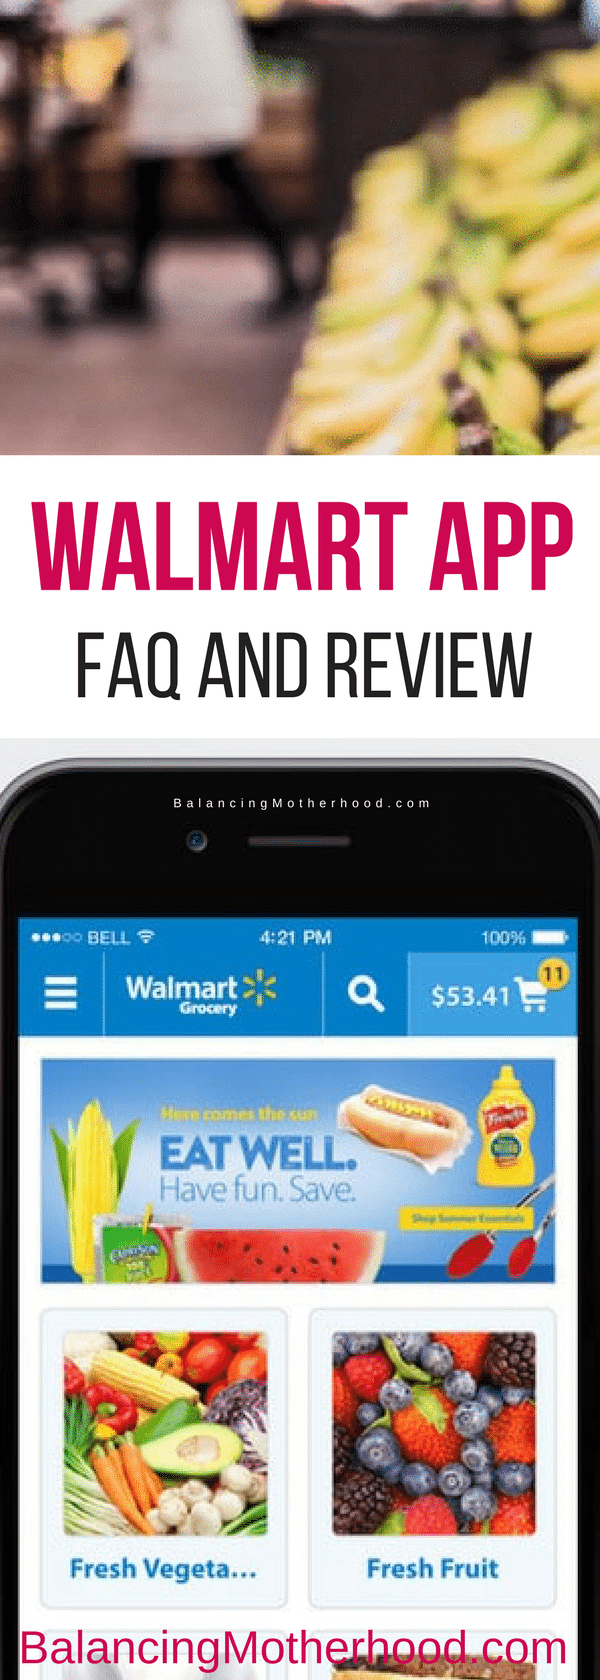 Walmart App Review and FAQ